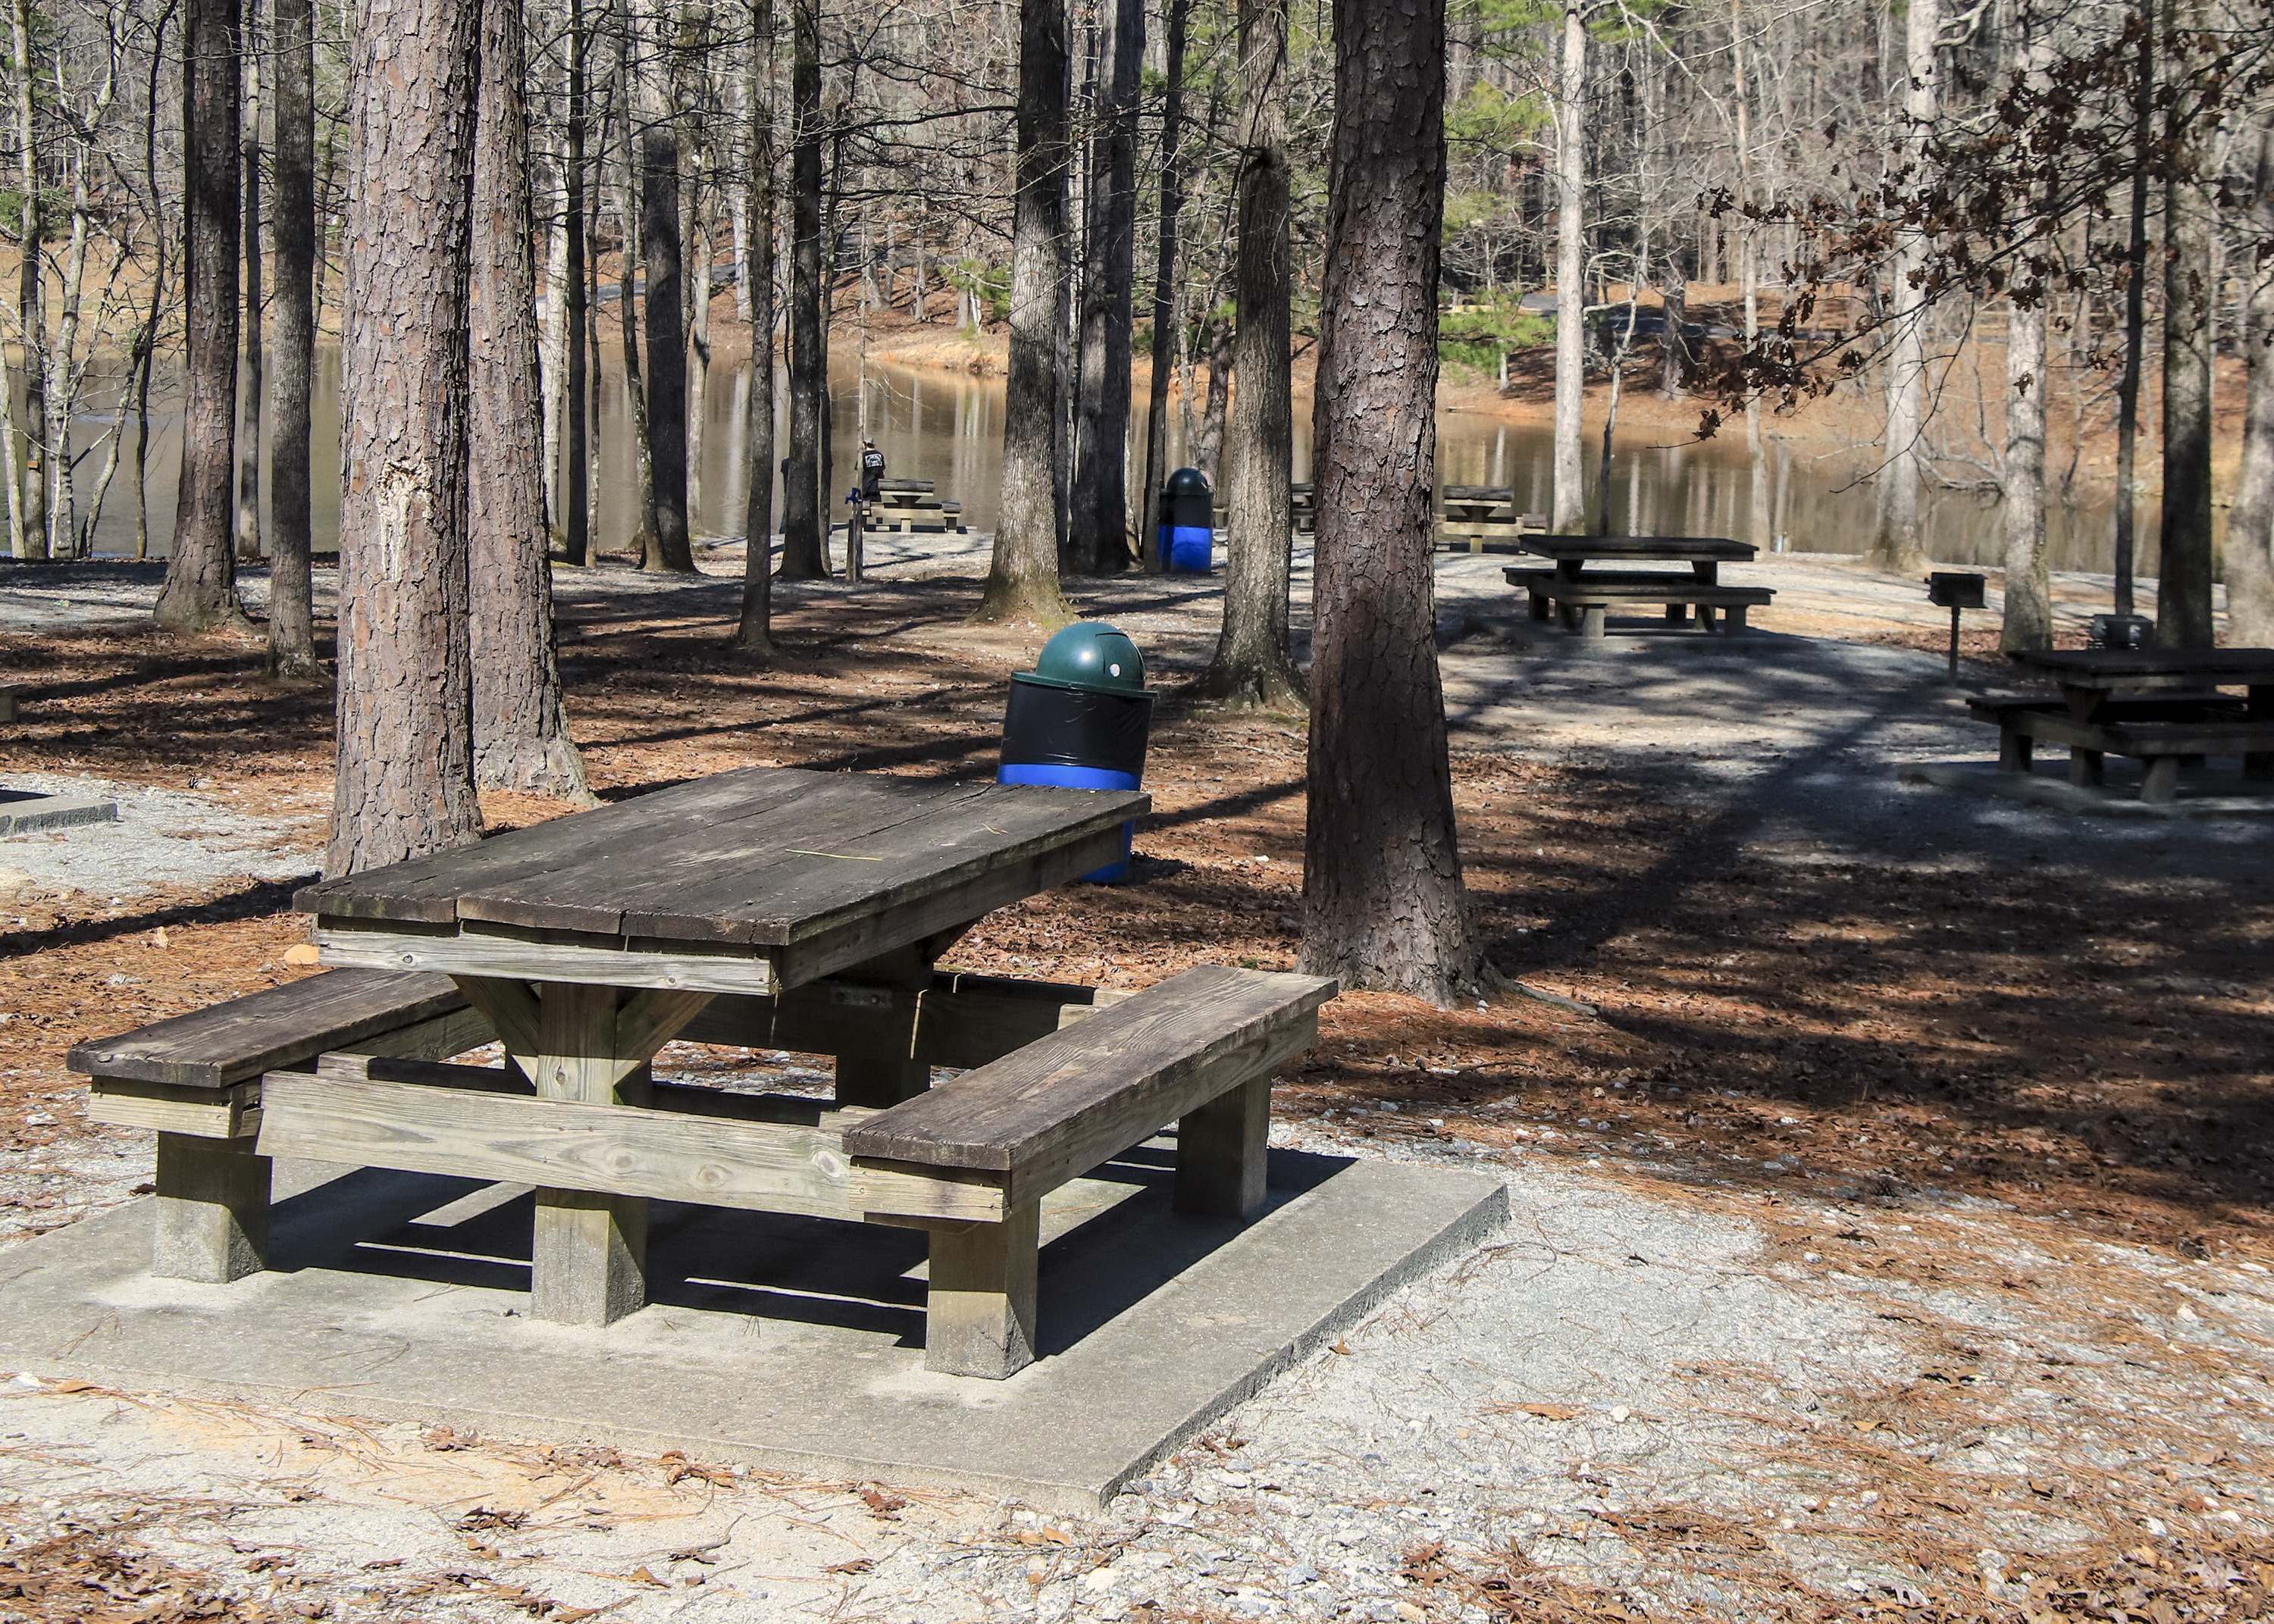 George Dissmeyer - Picnic Tables